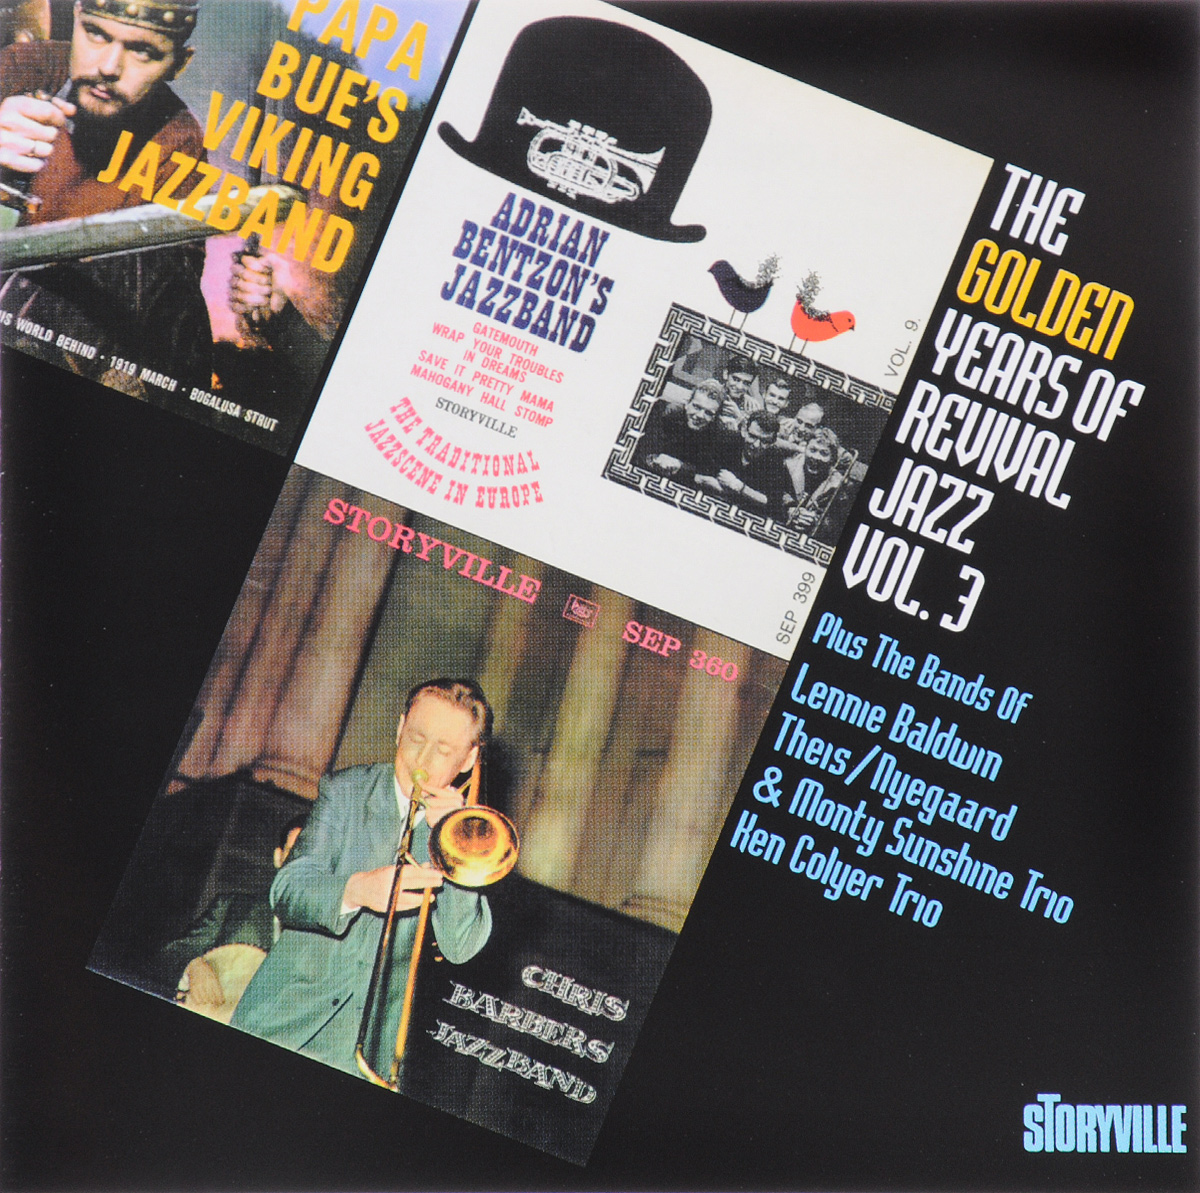 The Golden Years Of Revival Jazz. Vol. 3 4 pack 30xl 30 xl black